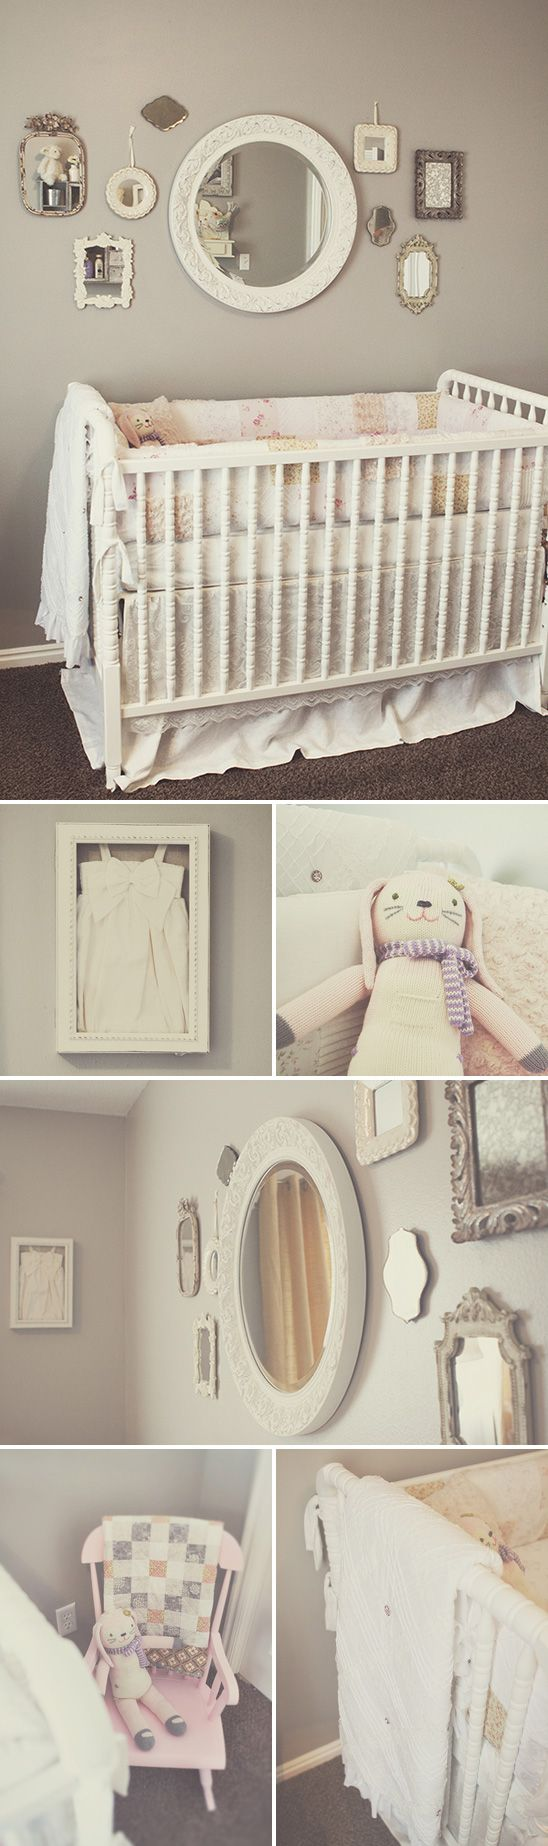 Honest crib for sale - Adore The Arrangement Of Mirrors Above The Crib Perhaps Inspo For One Of